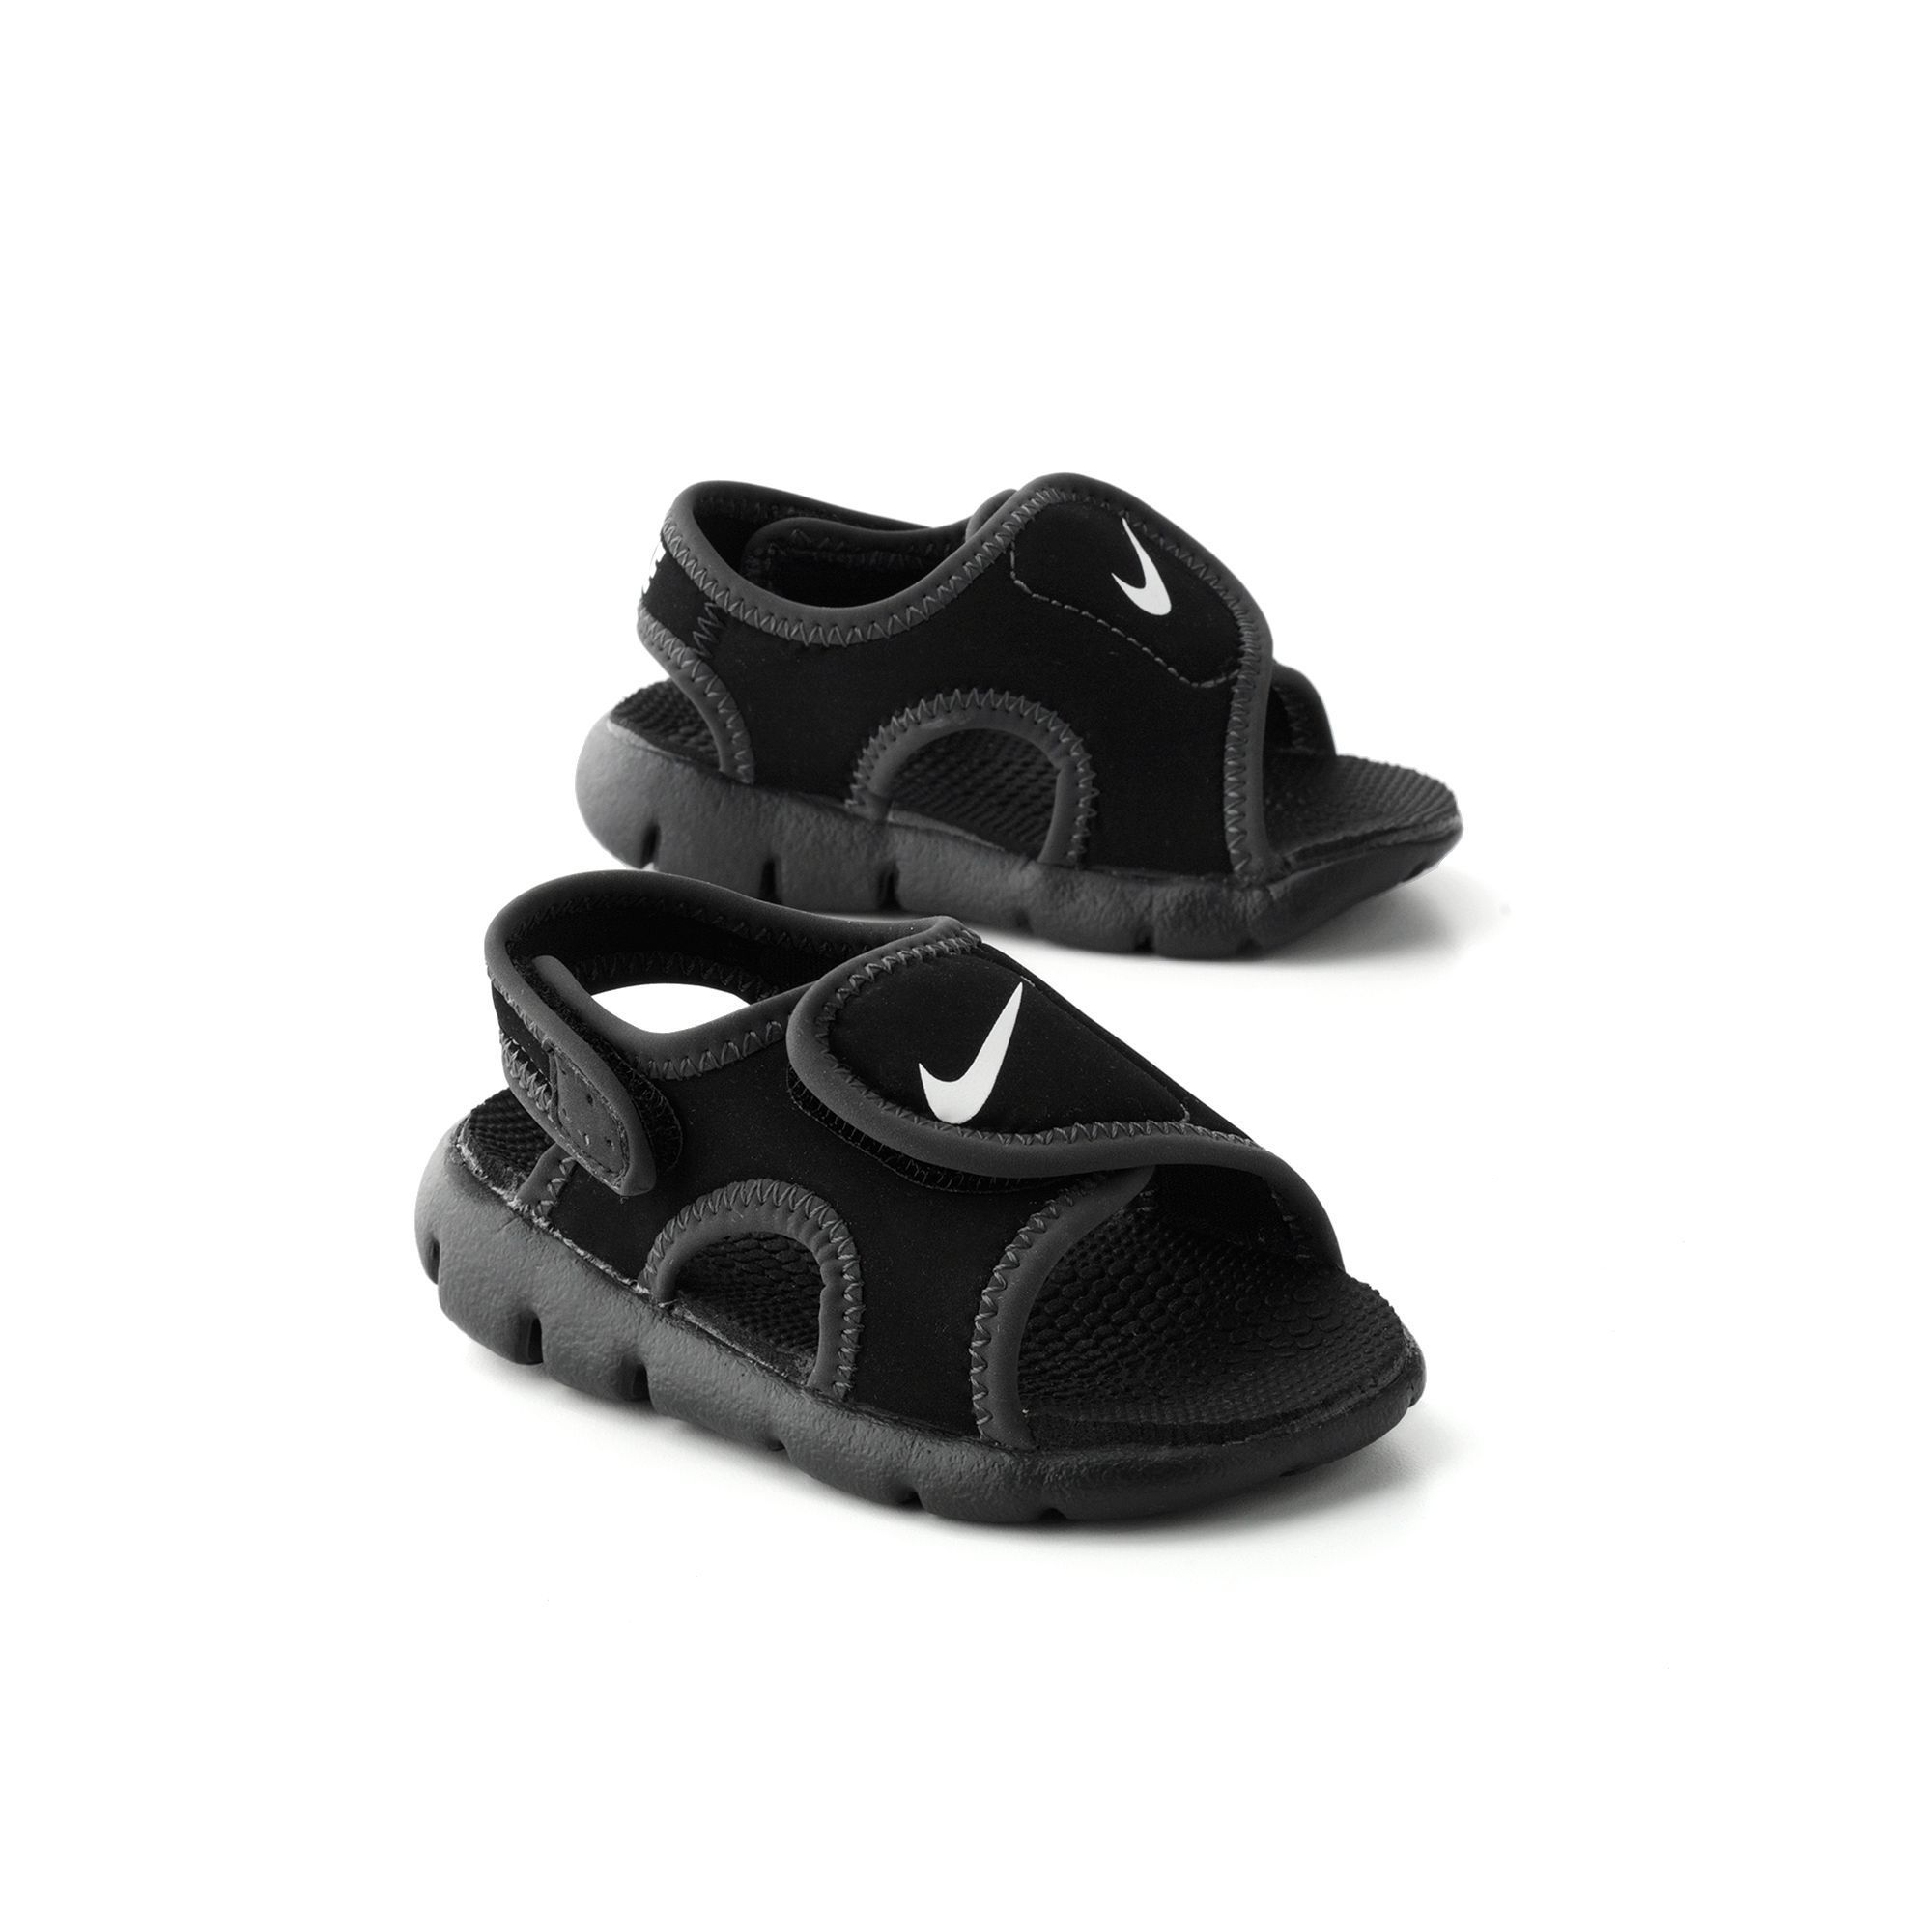 8f86cd21ec8 Nike Sunray Adjust 4 Toddler Boys' Sandals, Boy's, Size: 5 T, Grey (Charcoal )